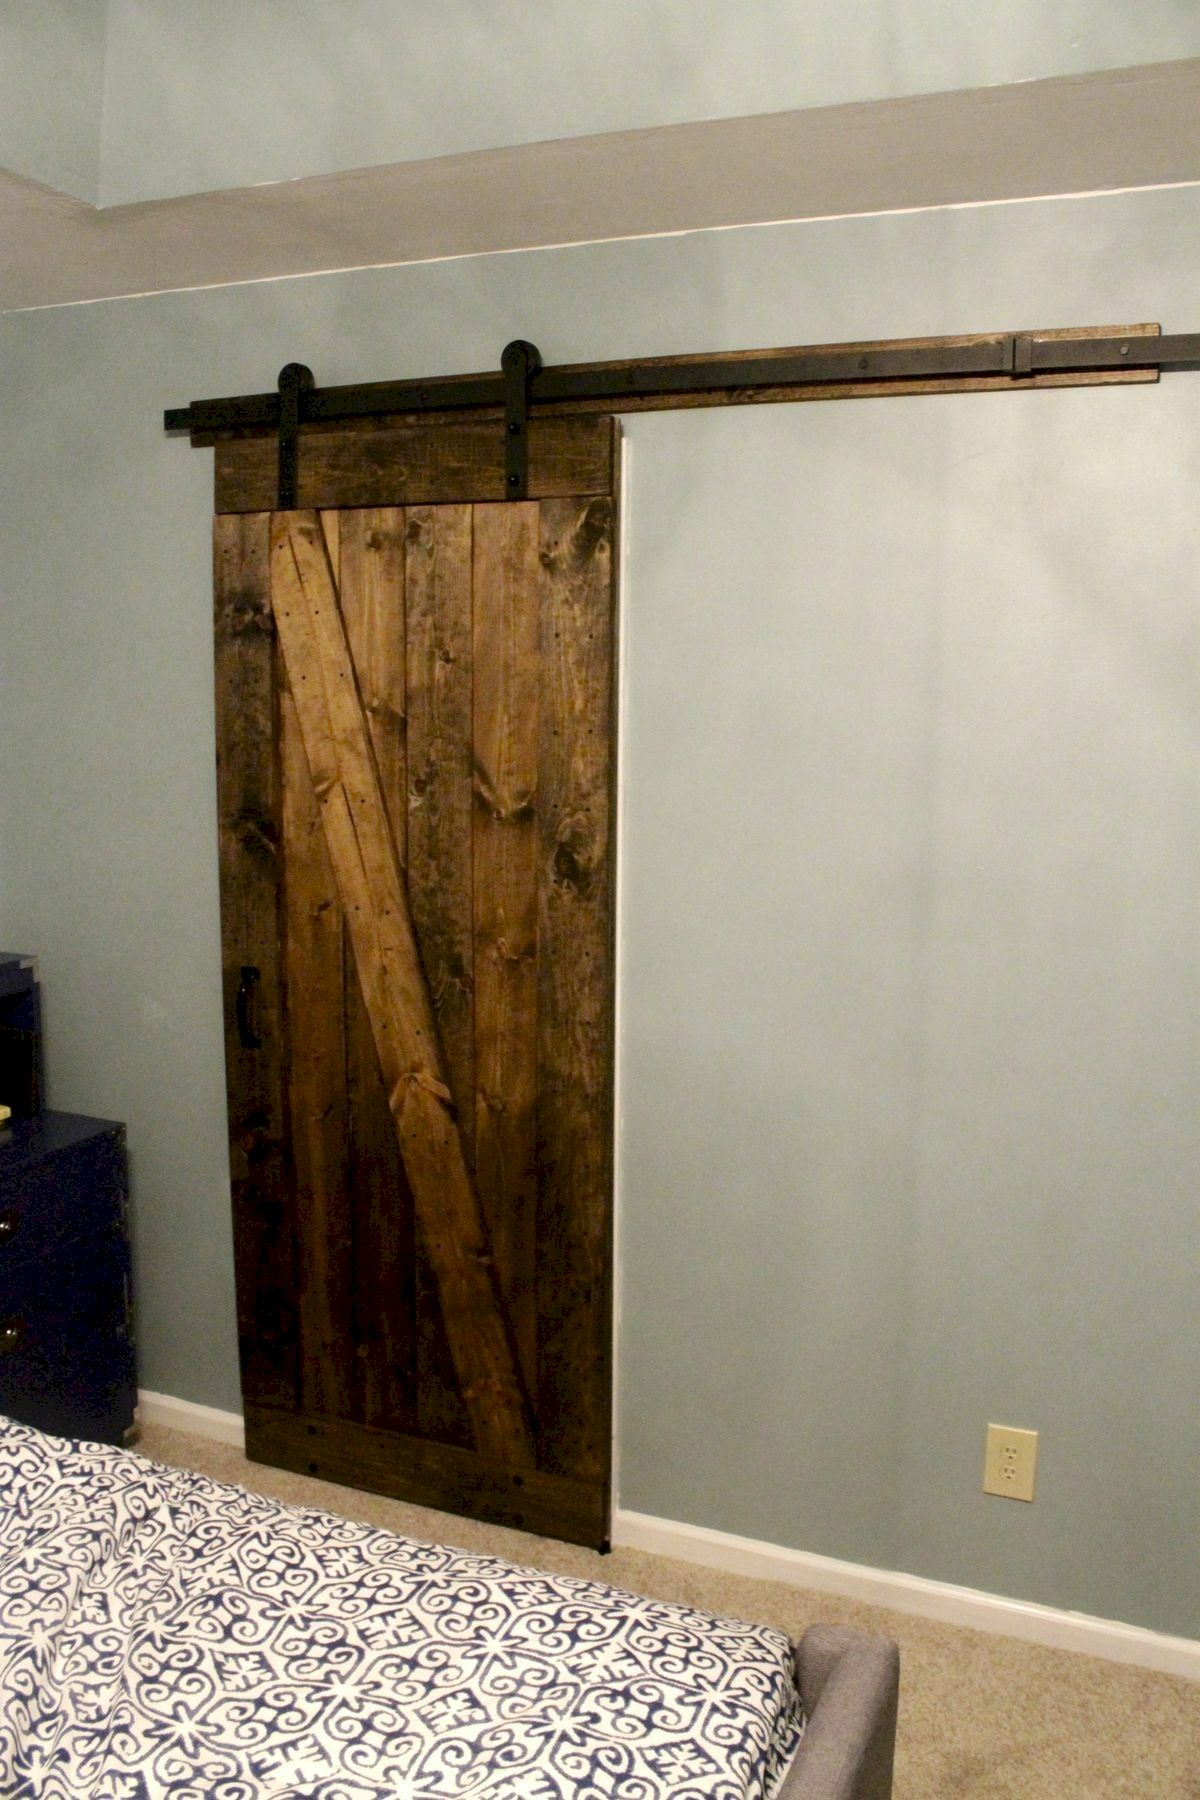 70 Rustic Home Decor Ideas for Doors and Windows (15)